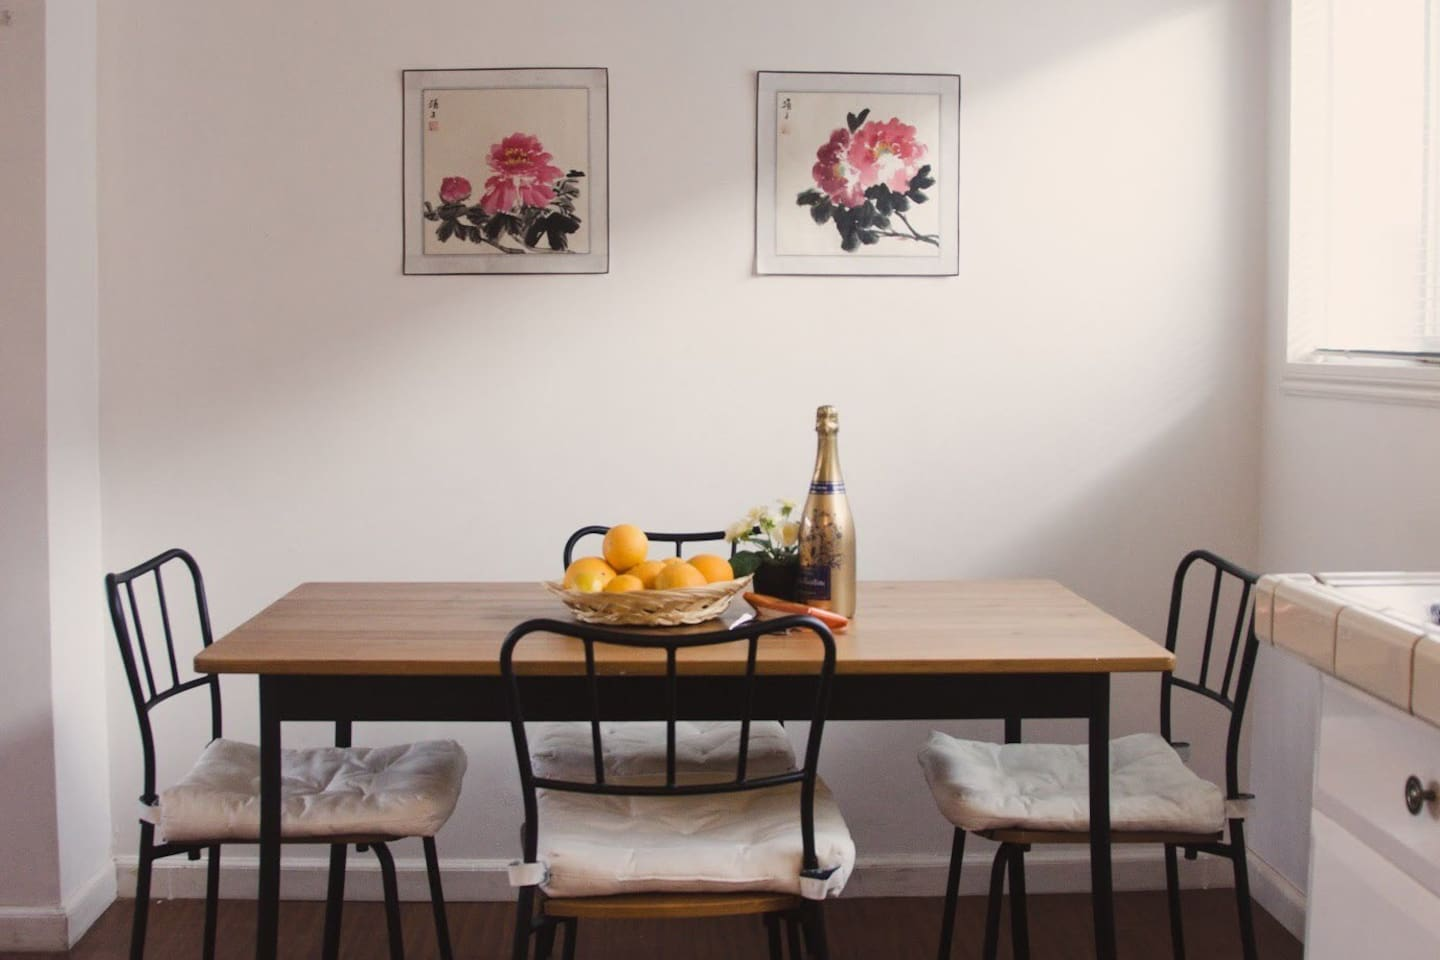 Indulge in the luxury of a well-deserved meal after a long day in our simple dining table.